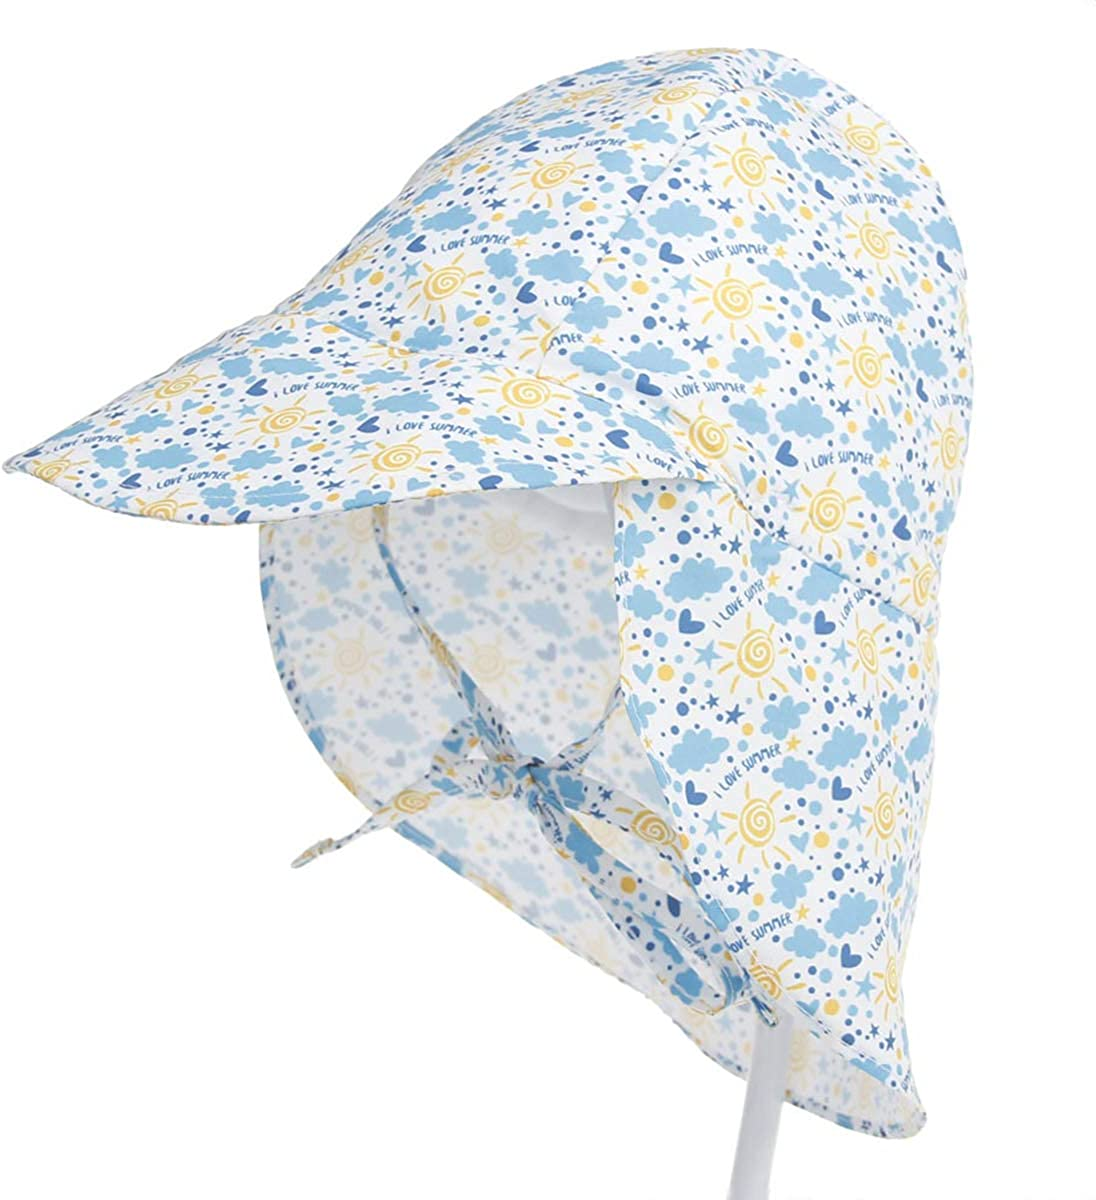 Soapow Milwaukee Mall Baby Quick-Drying Breathable Wide Hat Sun Protective Max 54% OFF